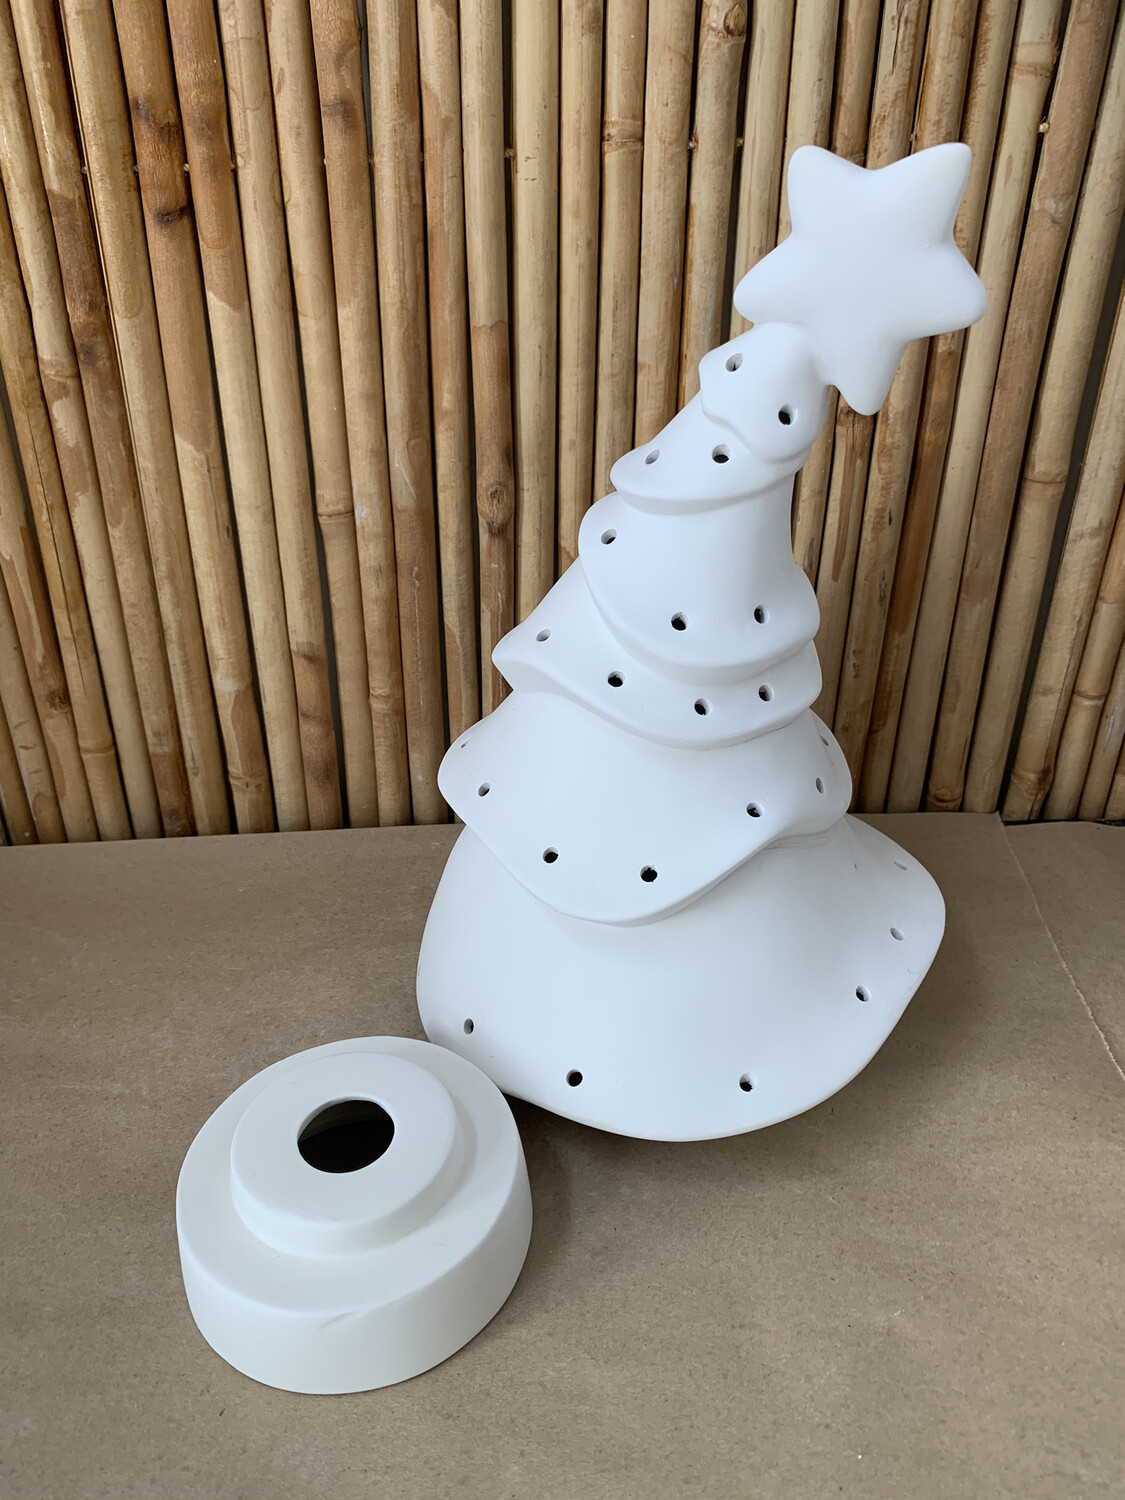 Paint Your Own Pottery - Ceramic   Whimsical Christmas Tree with Lights Painting Kit